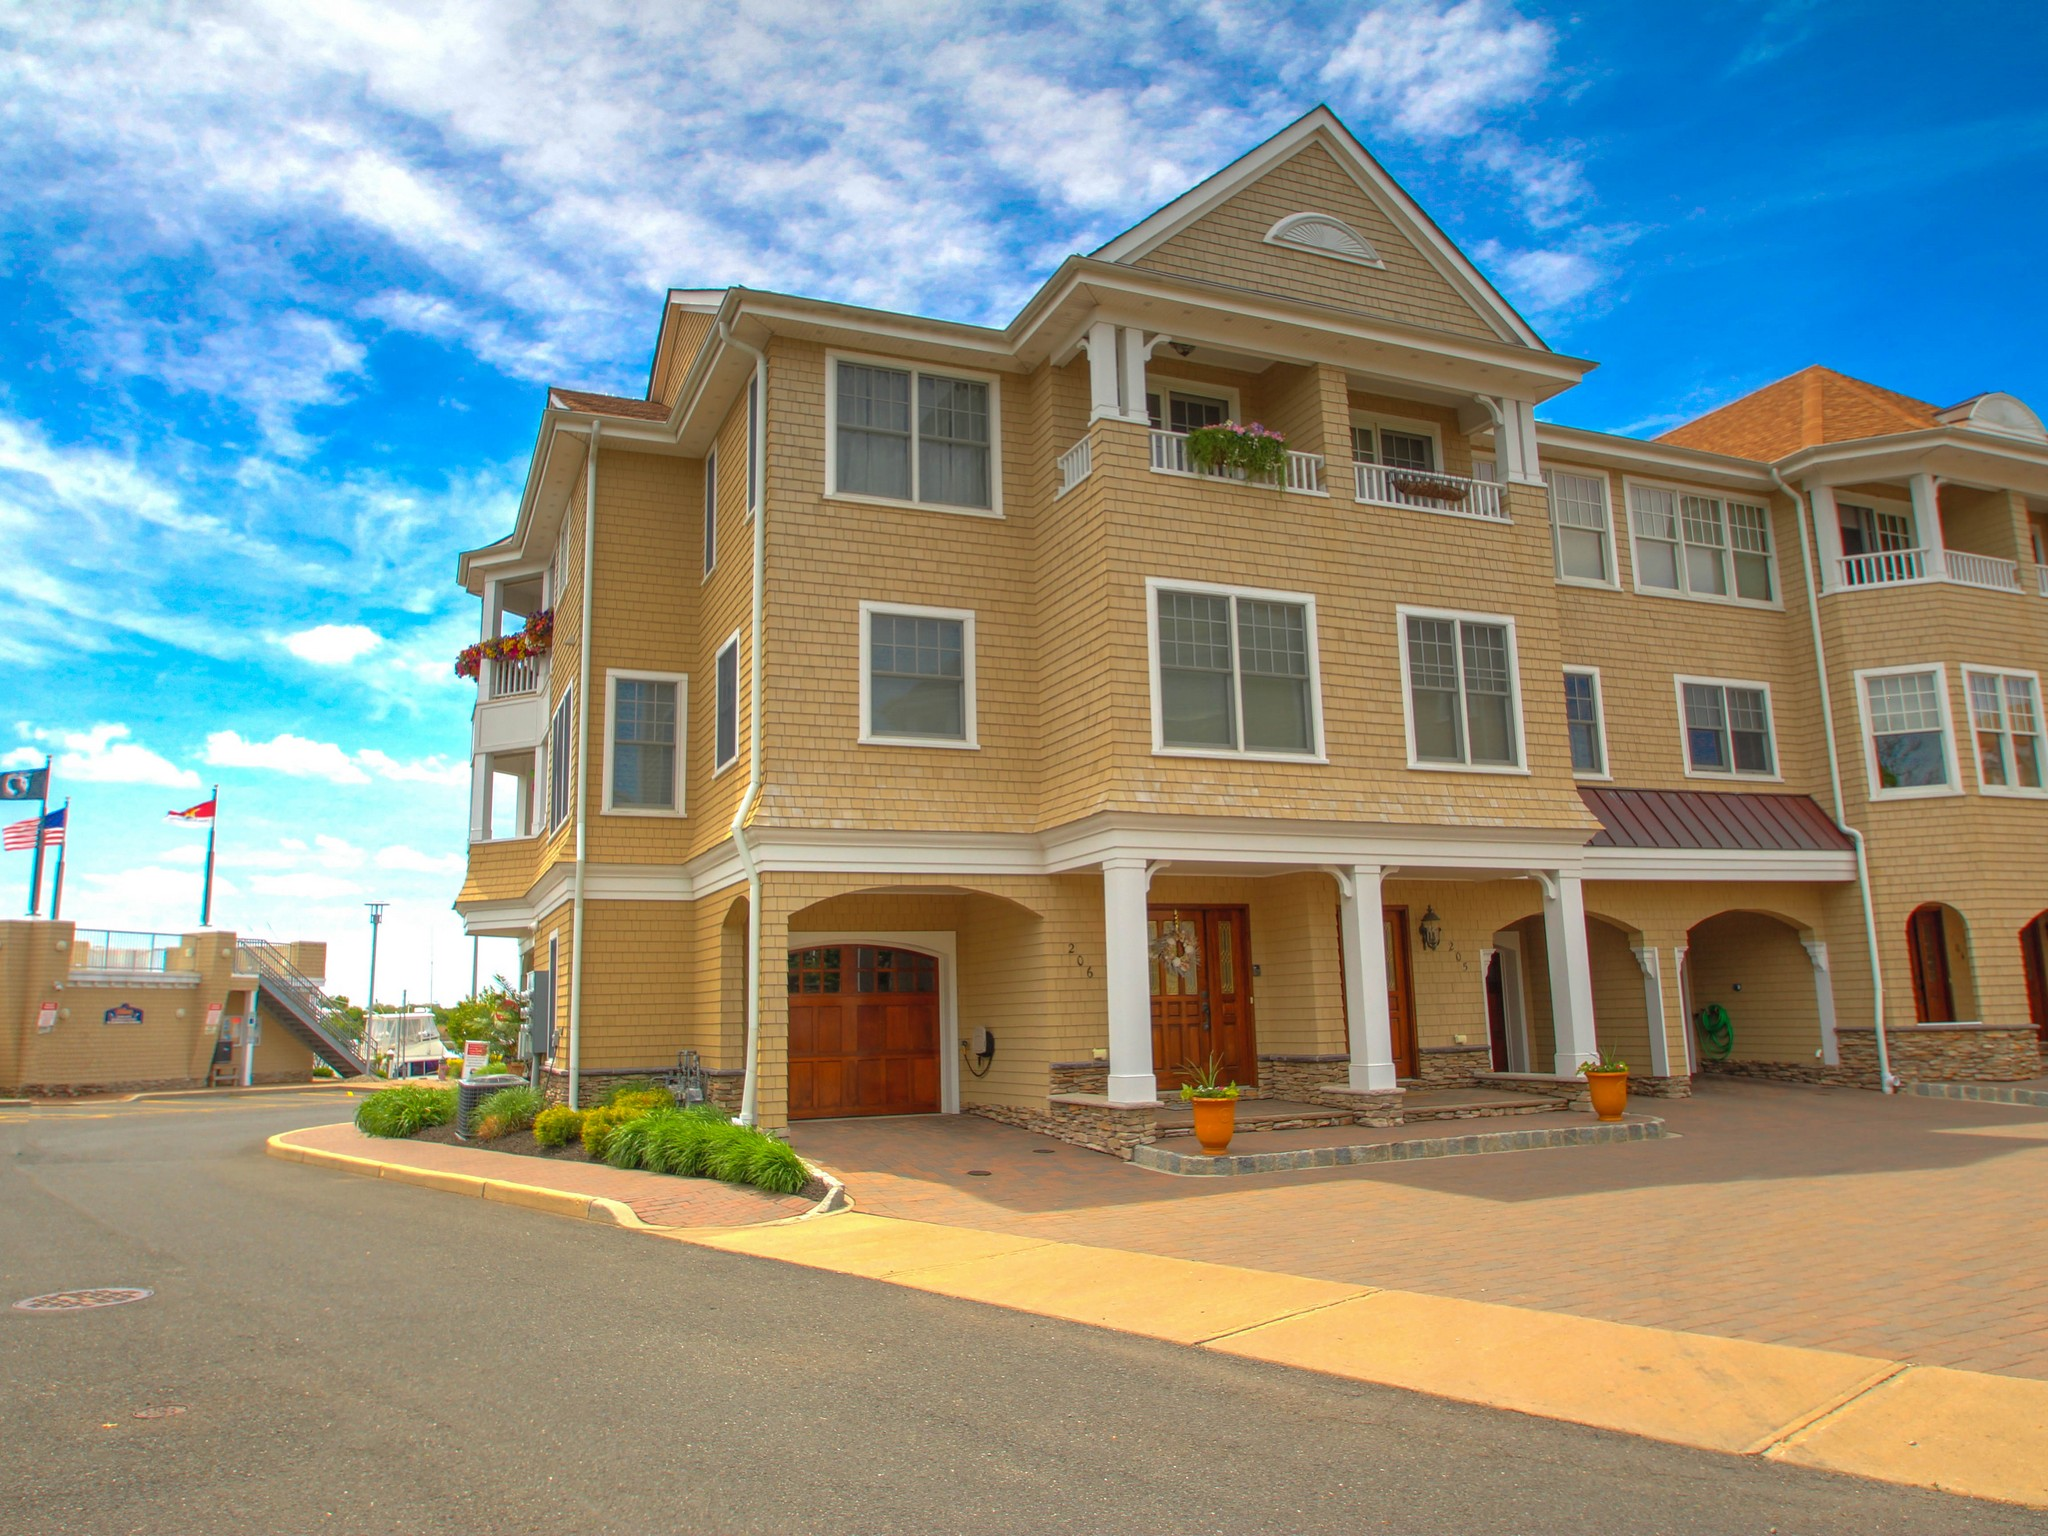 Single Family Home for Sale at Luxurious 3 Story Townhome 206 River Mist Way Brielle, New Jersey 08730 United States